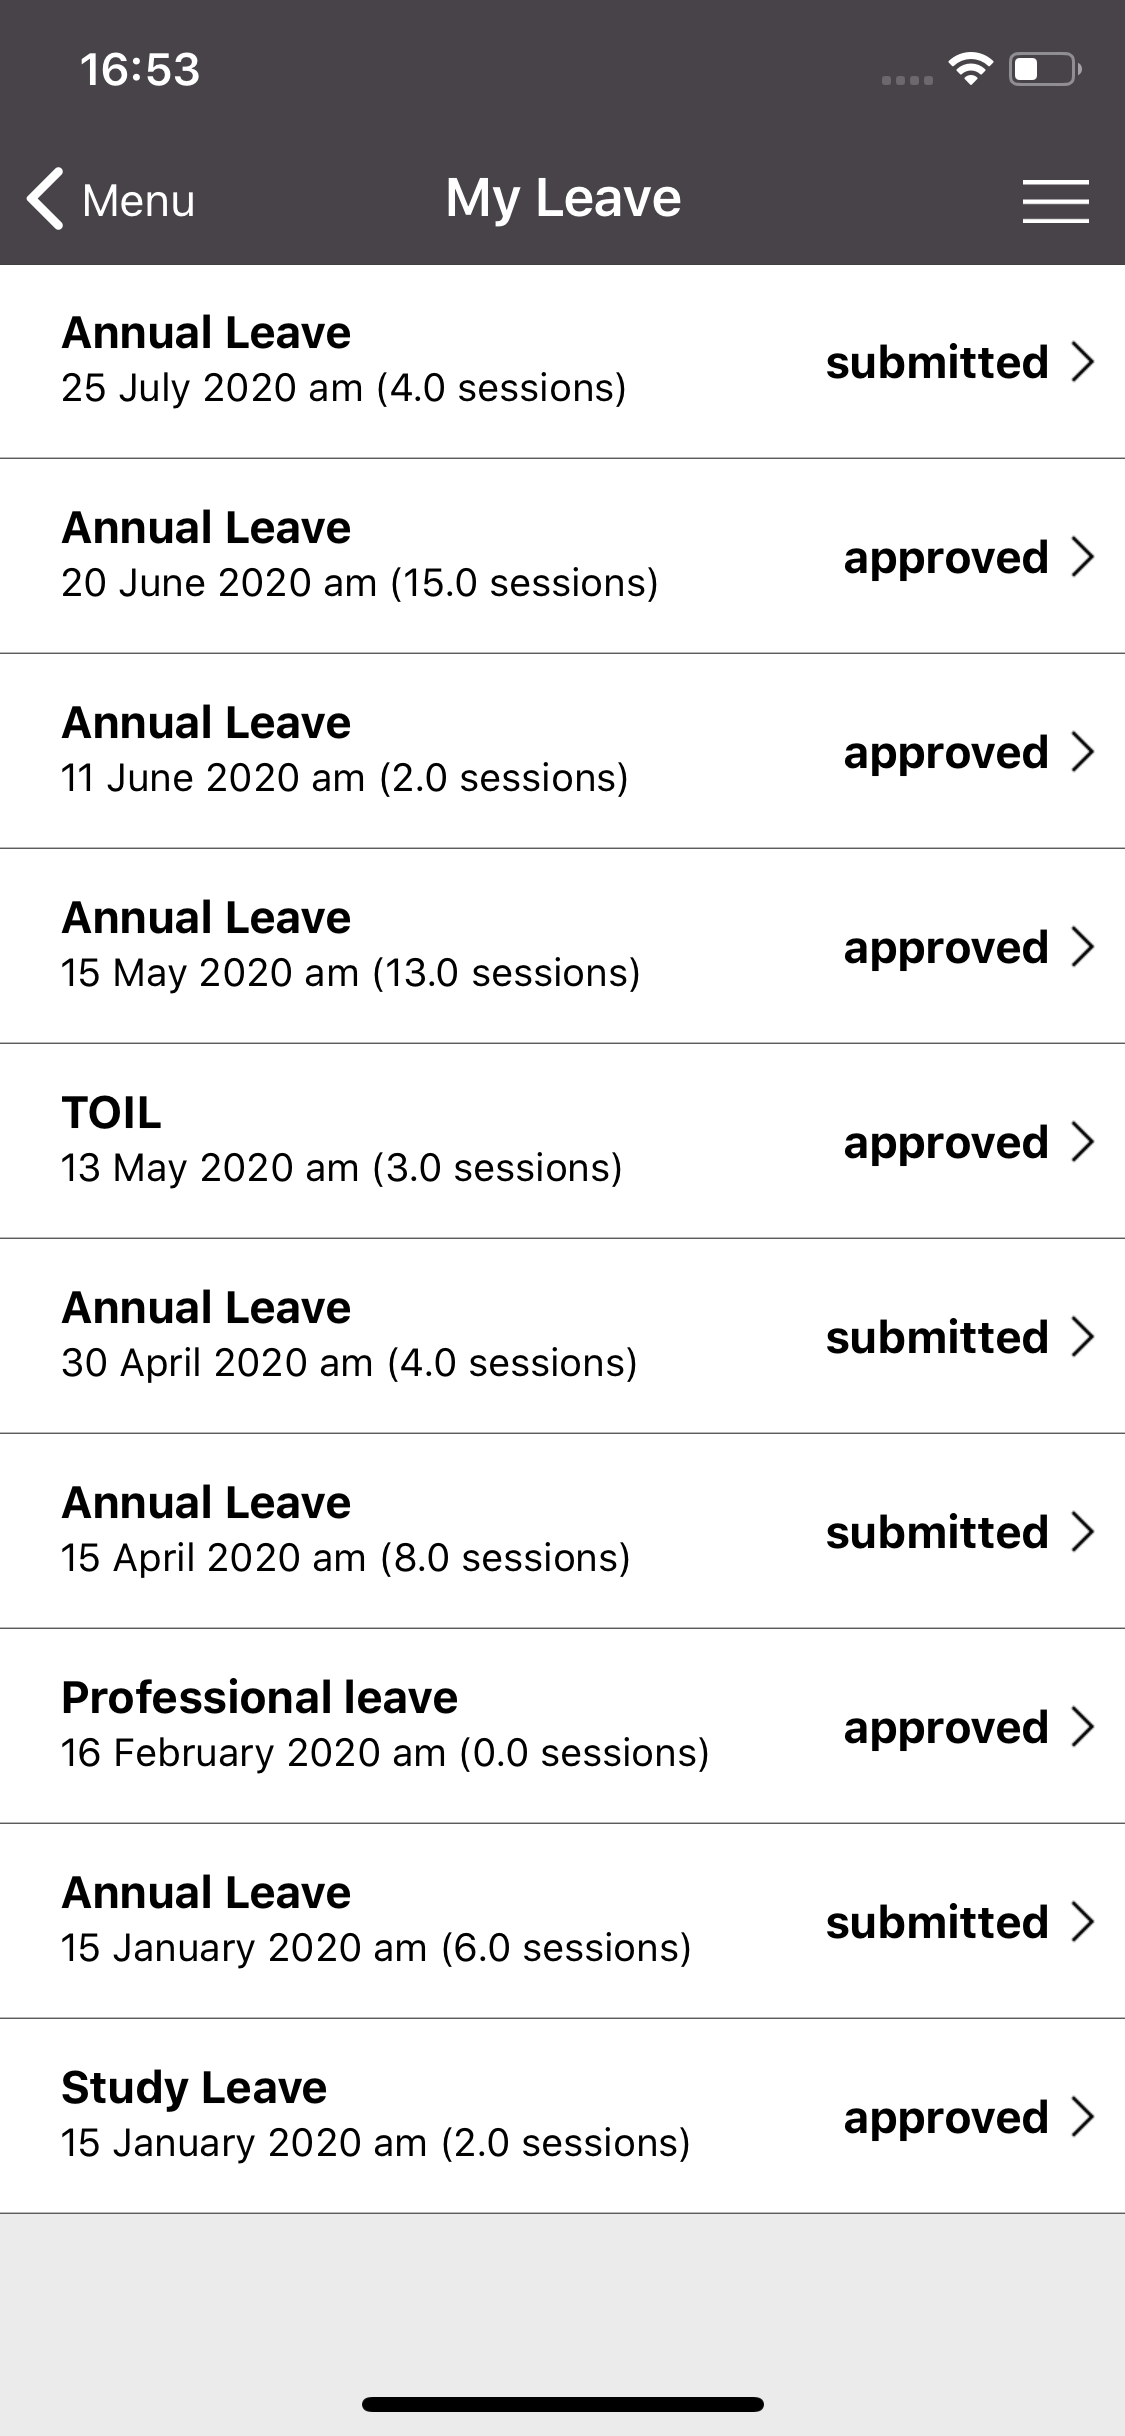 Medirota iOS: My Leave